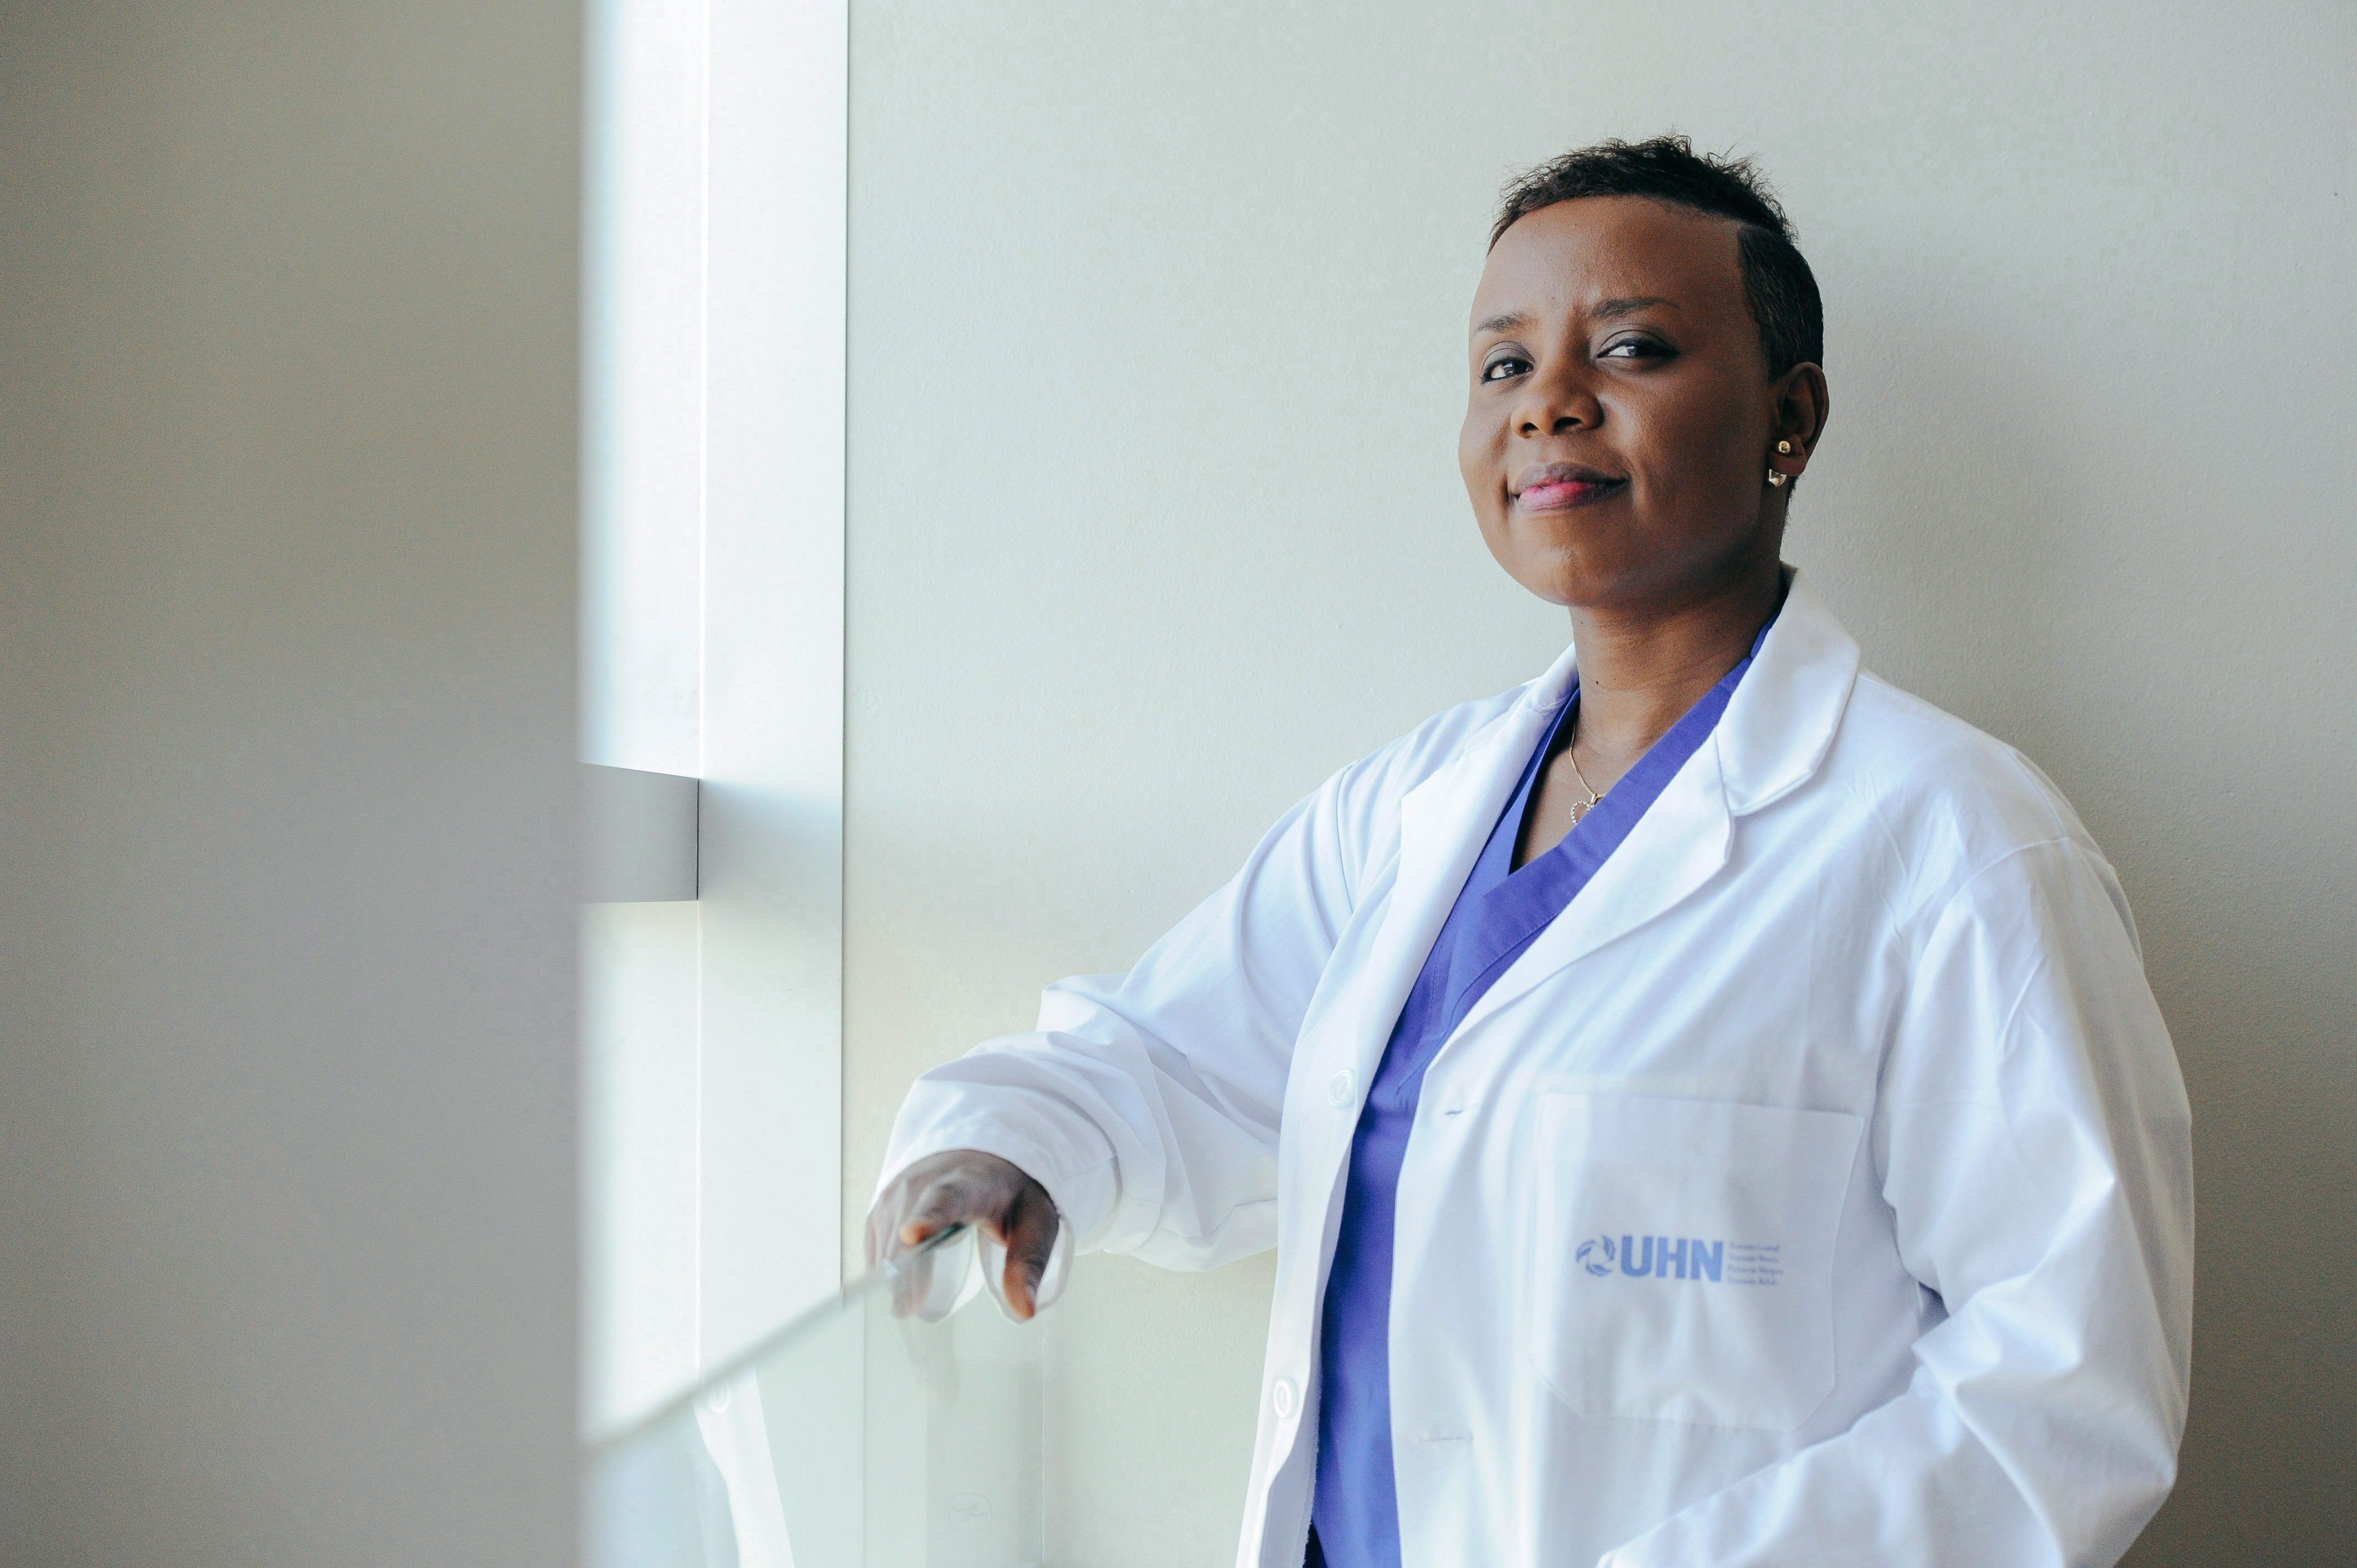 Claire Karekezi is shown at Toronto Western Hospital on Tuesday, May 8, 2018. In early July, the 35-year-old will return home as the first and only female neurosurgeon in Rwanda after completing her training in Toronto, where she has spent the last year honing her skills in neuro-oncology and skull base surgery, specializing in the removal of brain tumours. THE CANADIAN PRESS/Galit Rodan